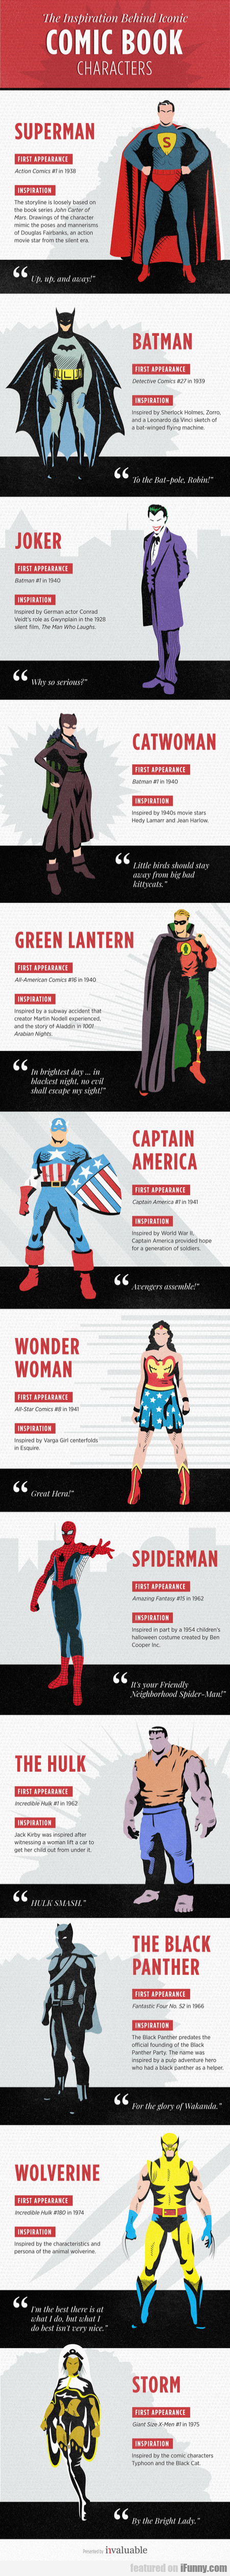 the inspiration behind iconic comic book character